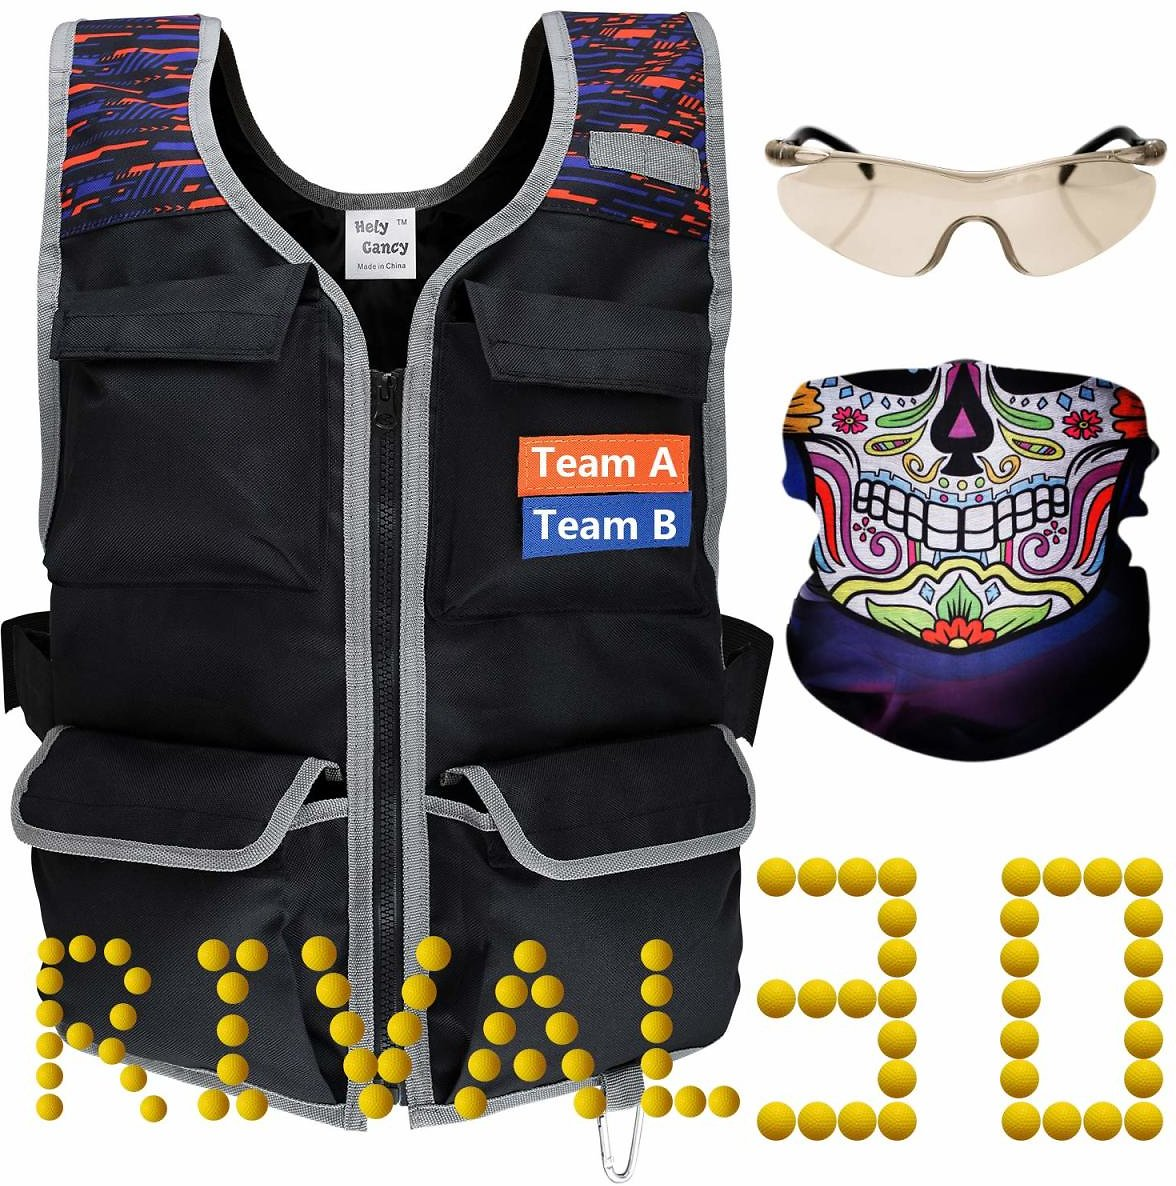 Nerf Rival Tactical Vest Kit with 30 Rival Rounds